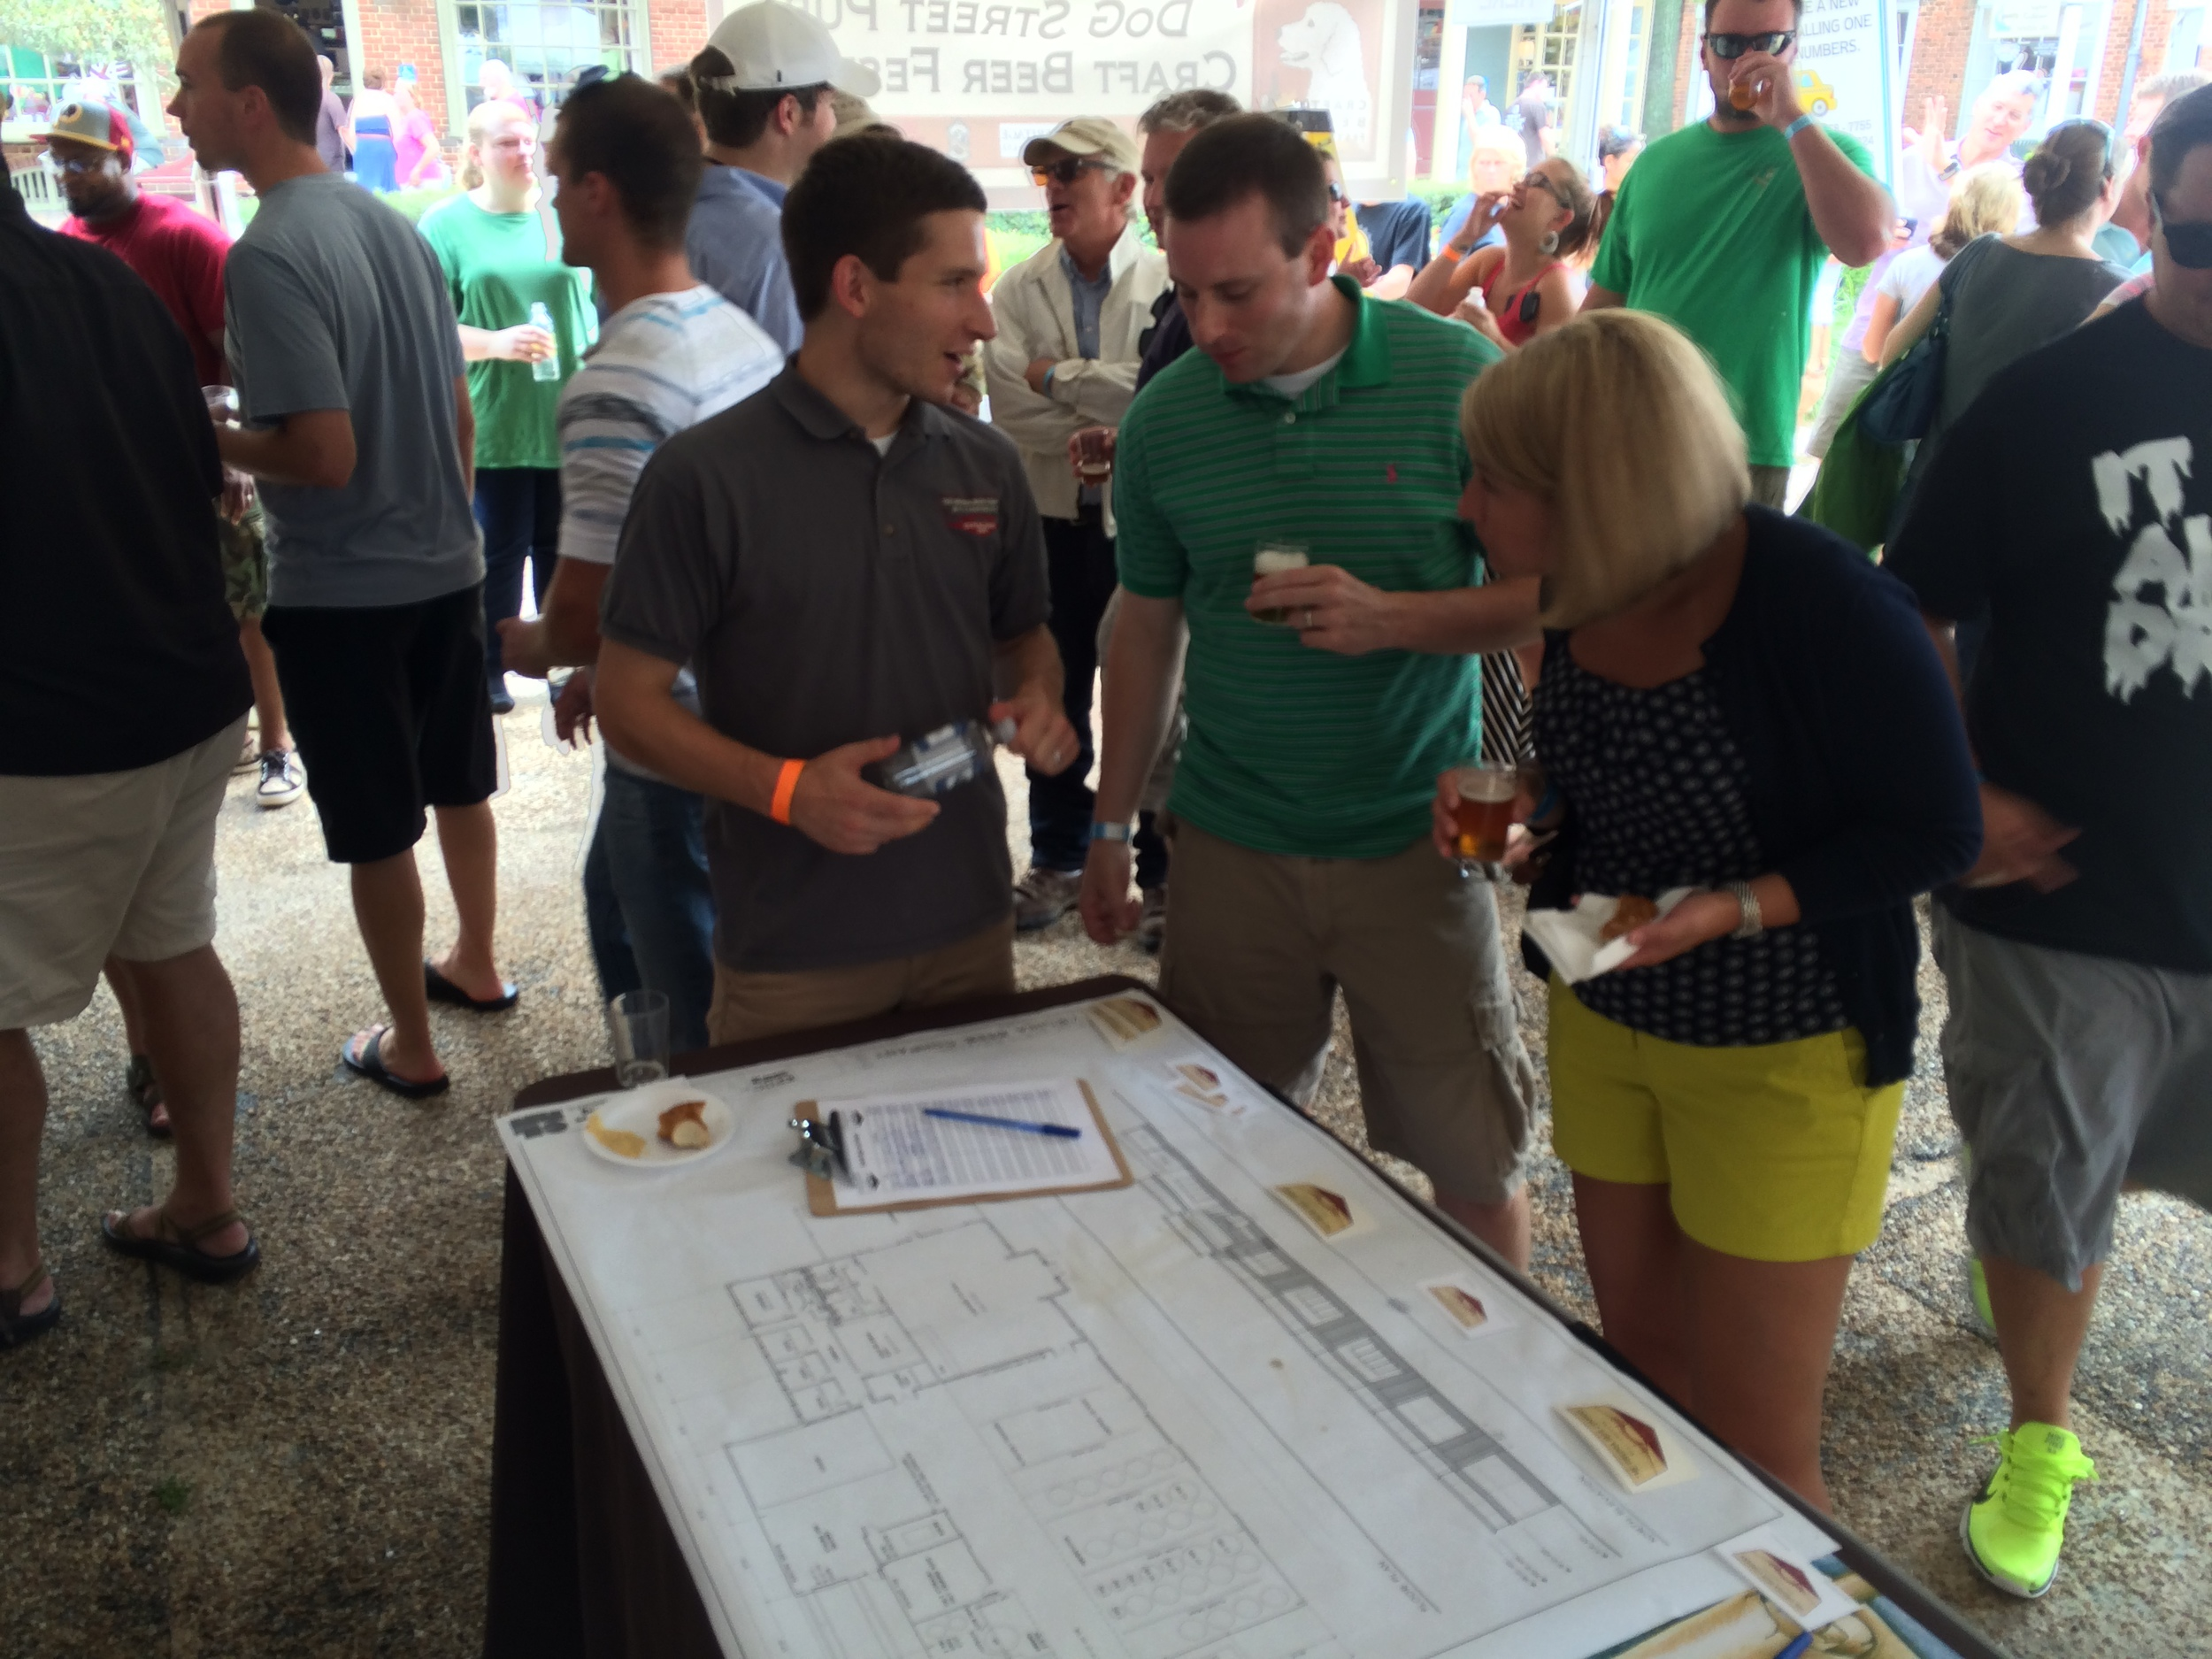 Meeting the crowd at the 2014 DoG Street Pub Craft Beer Festival!